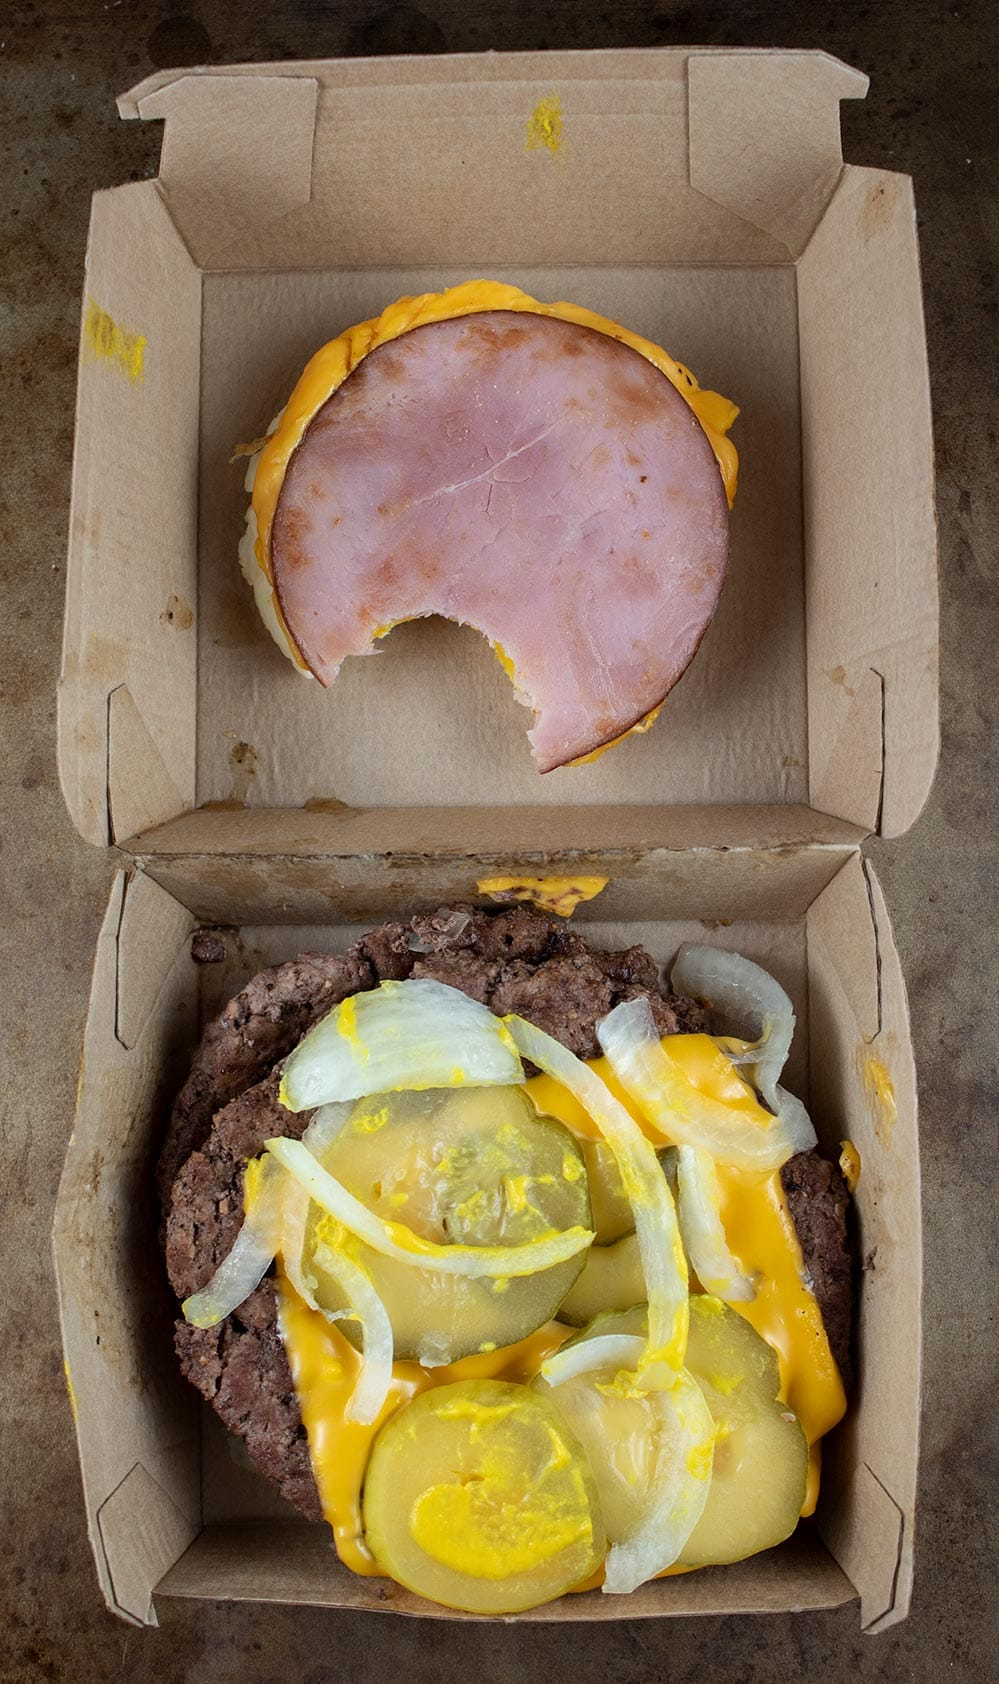 keto mcdonald's box with egg mcmuffin and quarter pounder with cheese inside